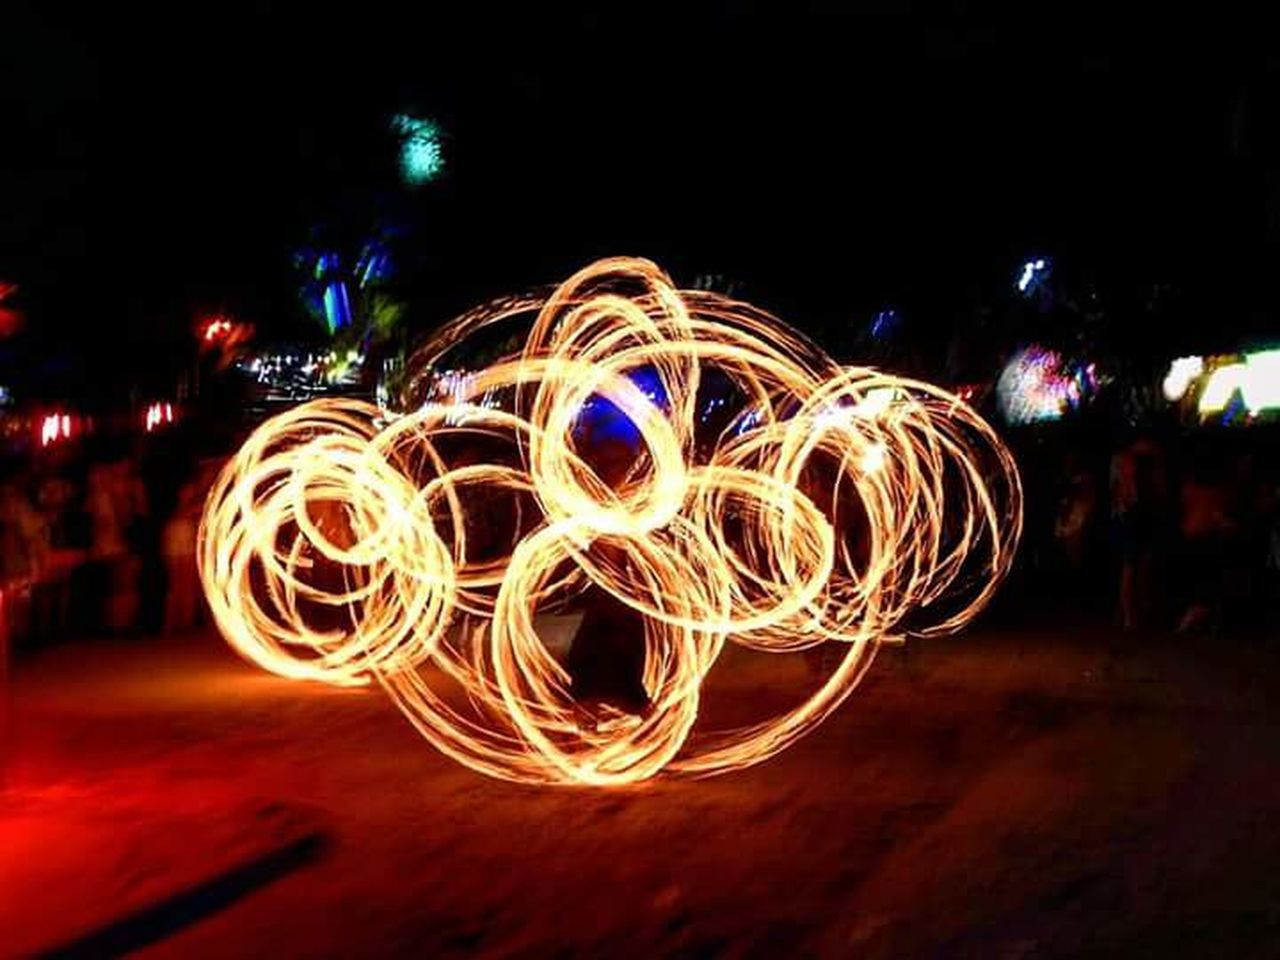 Long Exposure Motion Circle Blurred Motion Speed Arts Culture And Entertainment Fire Dancer koh phangan south thiland has so much to offer and better part of my photos are from and around thailand but this is on one of the parties in koh phangan